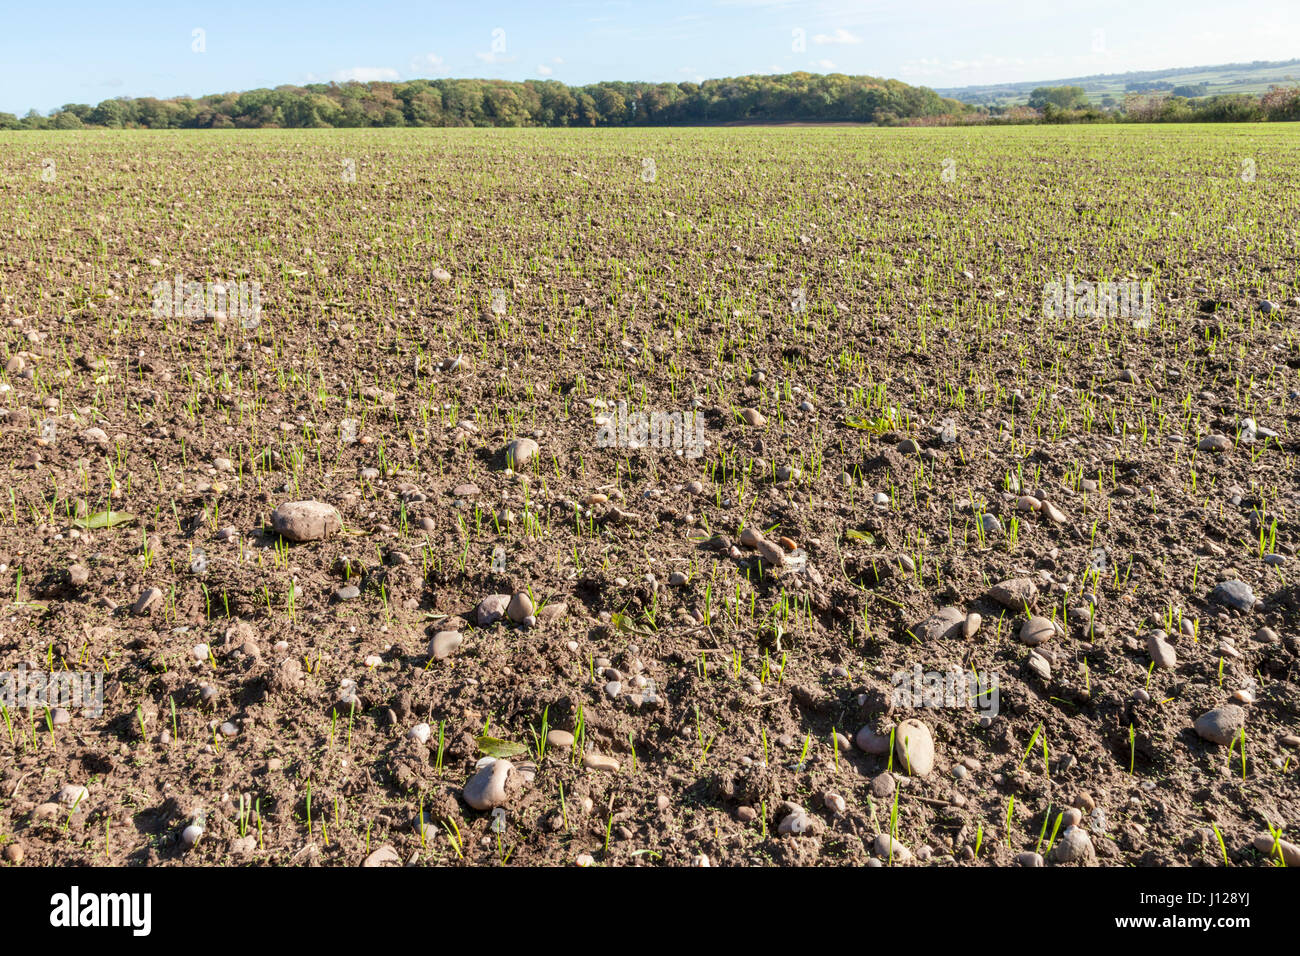 Stony ground: farmland field with many stones in the soil,Nottinghamshire, England, UK - Stock Image